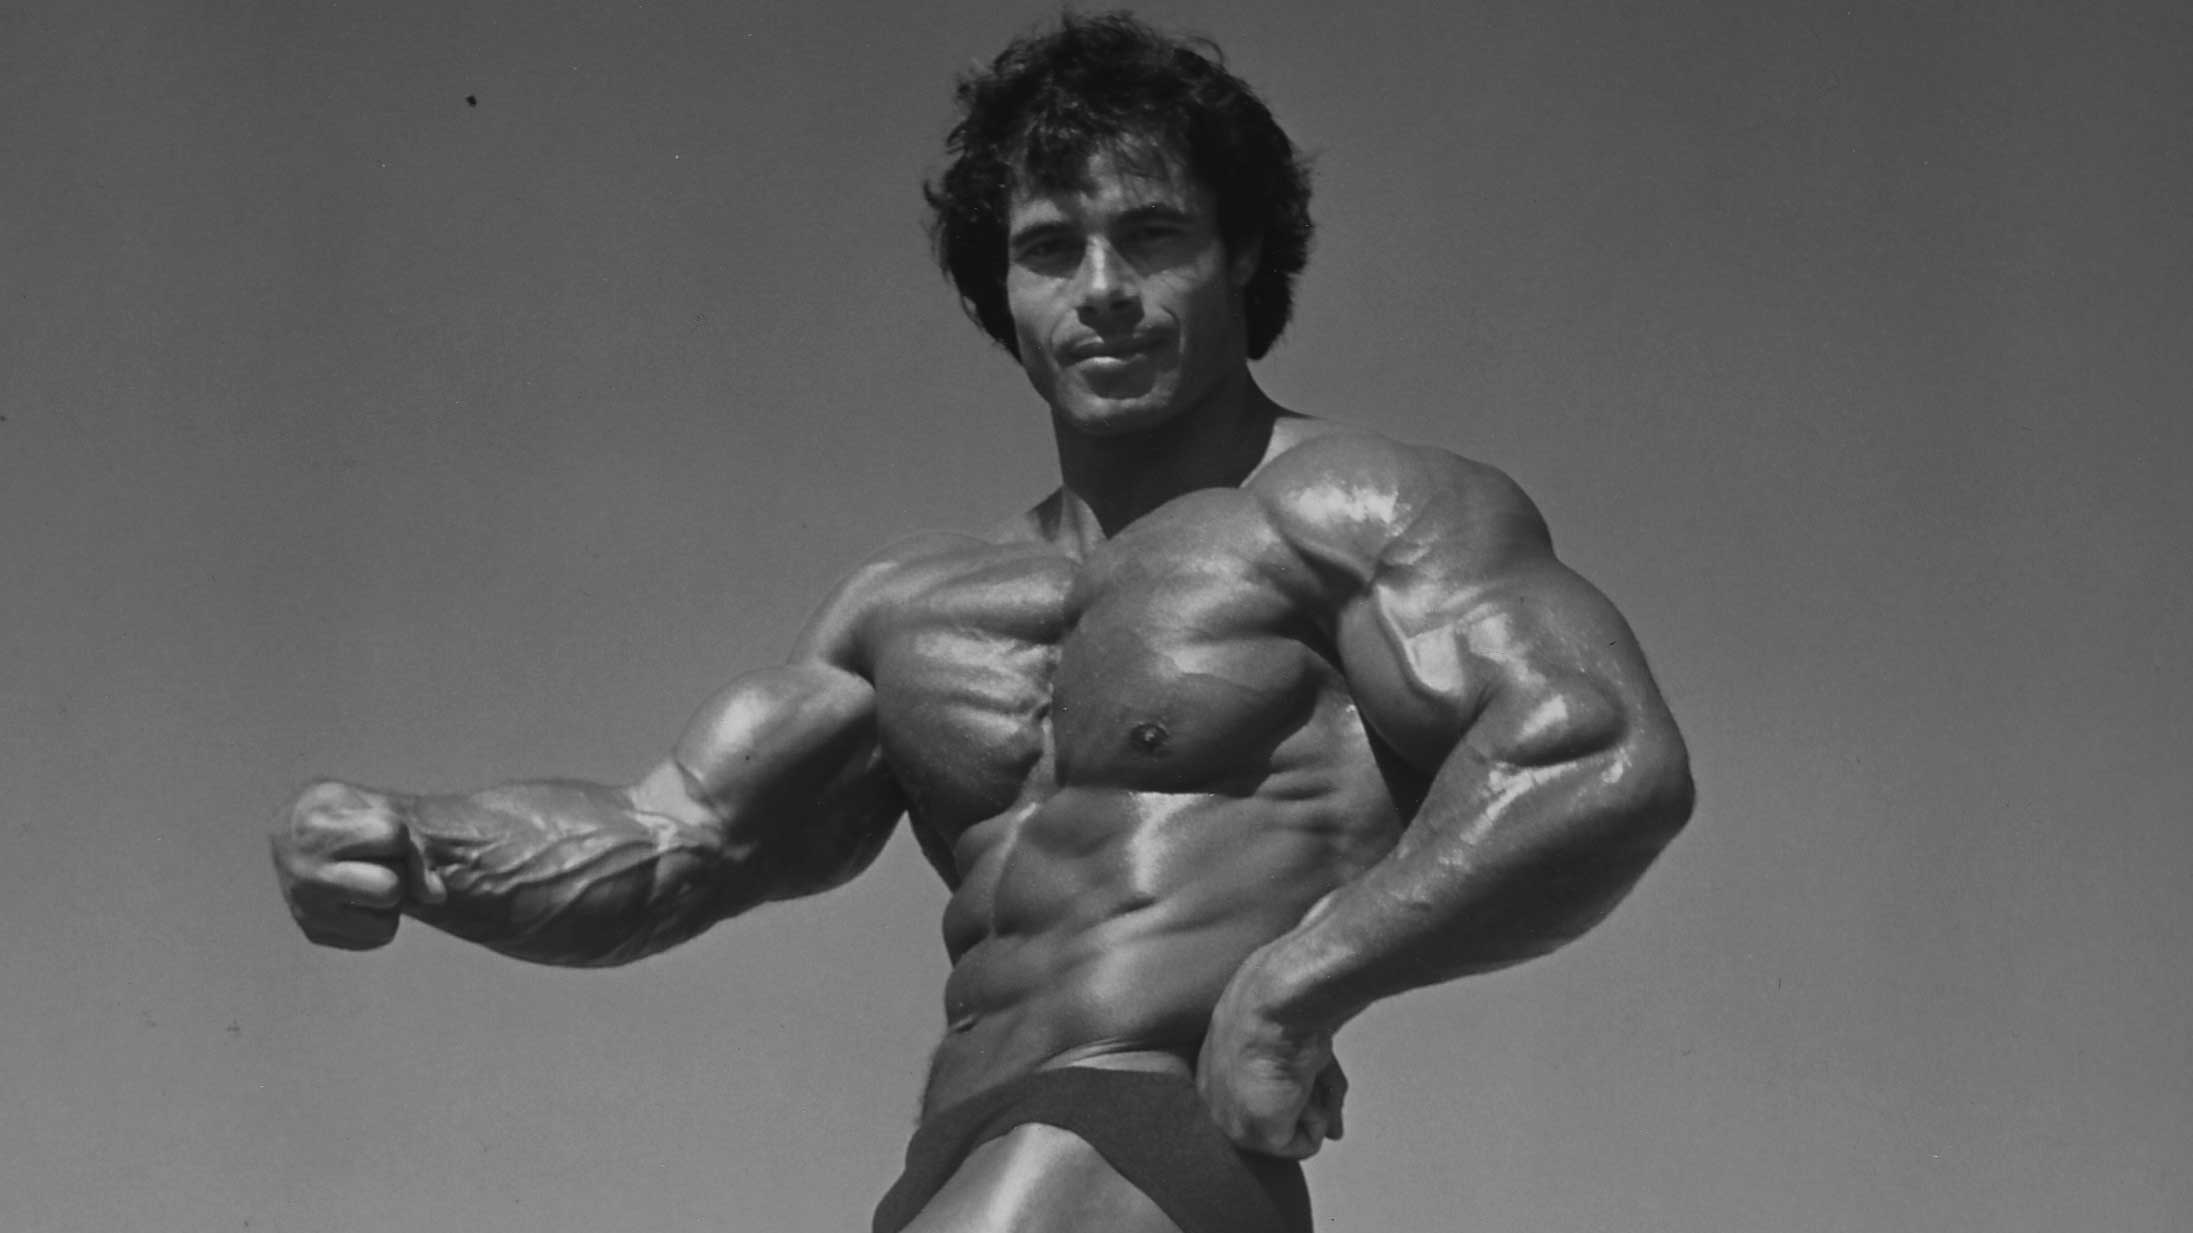 Images of Franco Columbu | 2193x1233